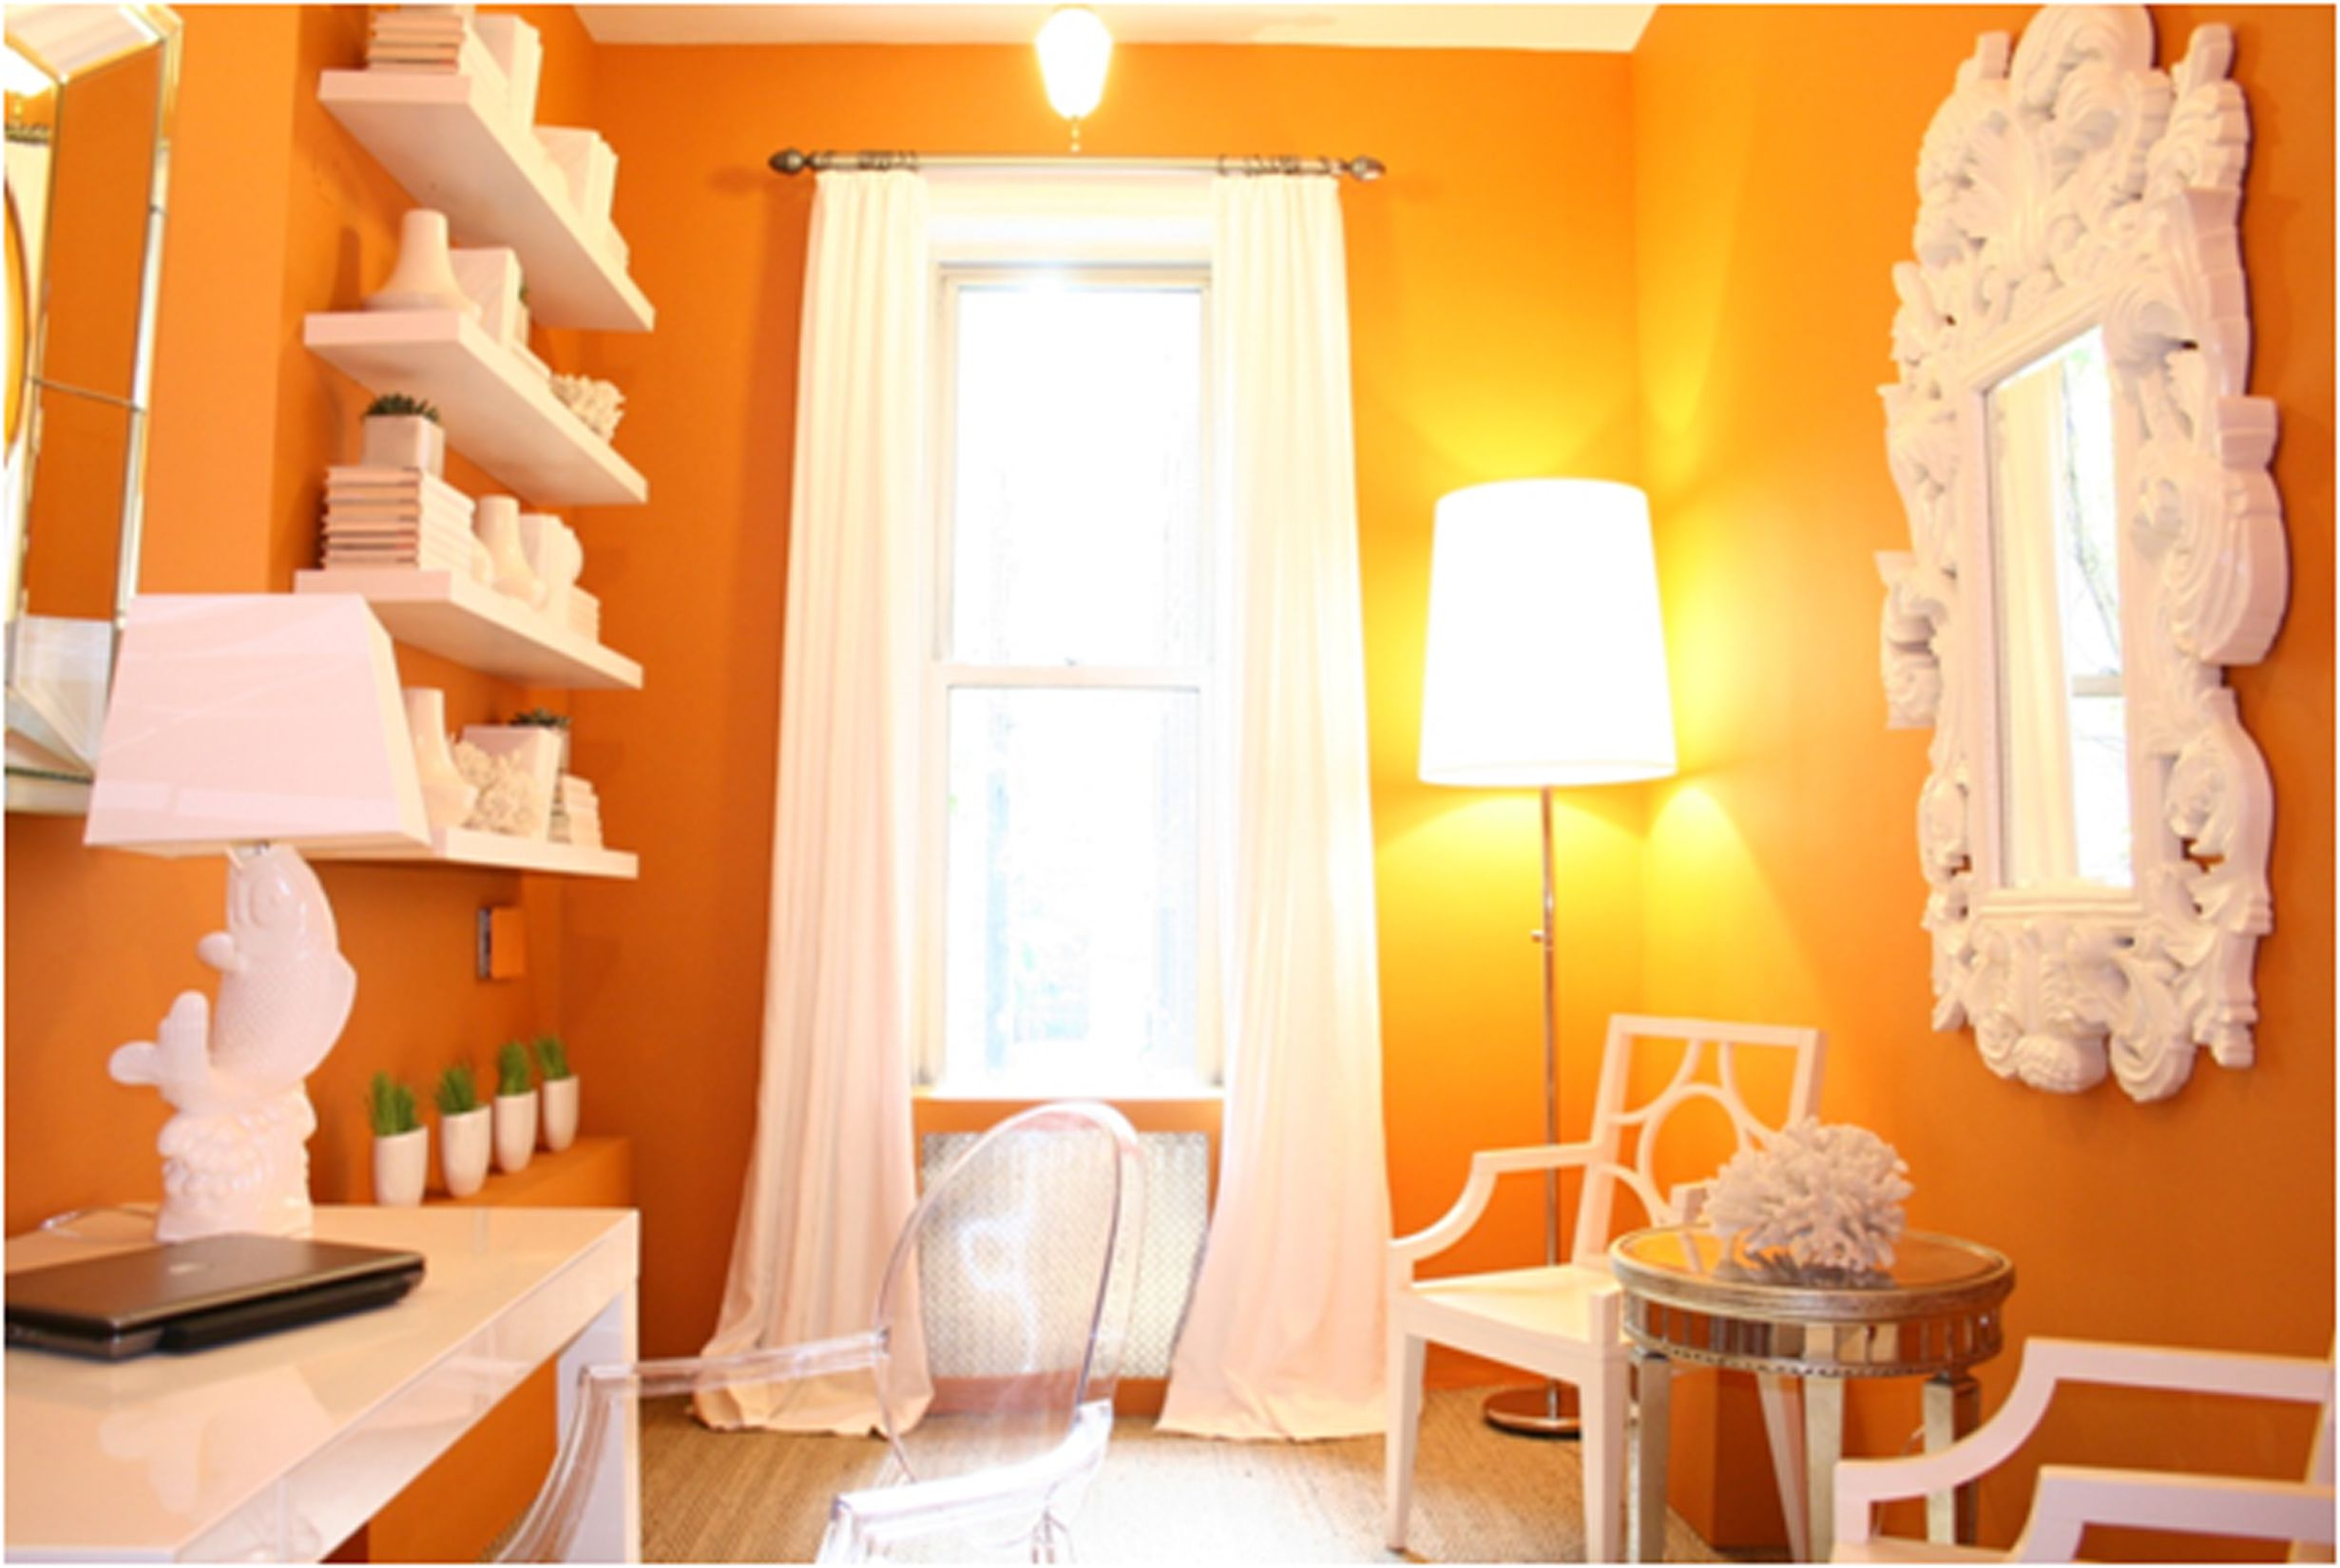 Place Bright Floor Lamp inisde Small Room using Fall Decorating Ideas with Artistic Wall Mirrr and White Chairs